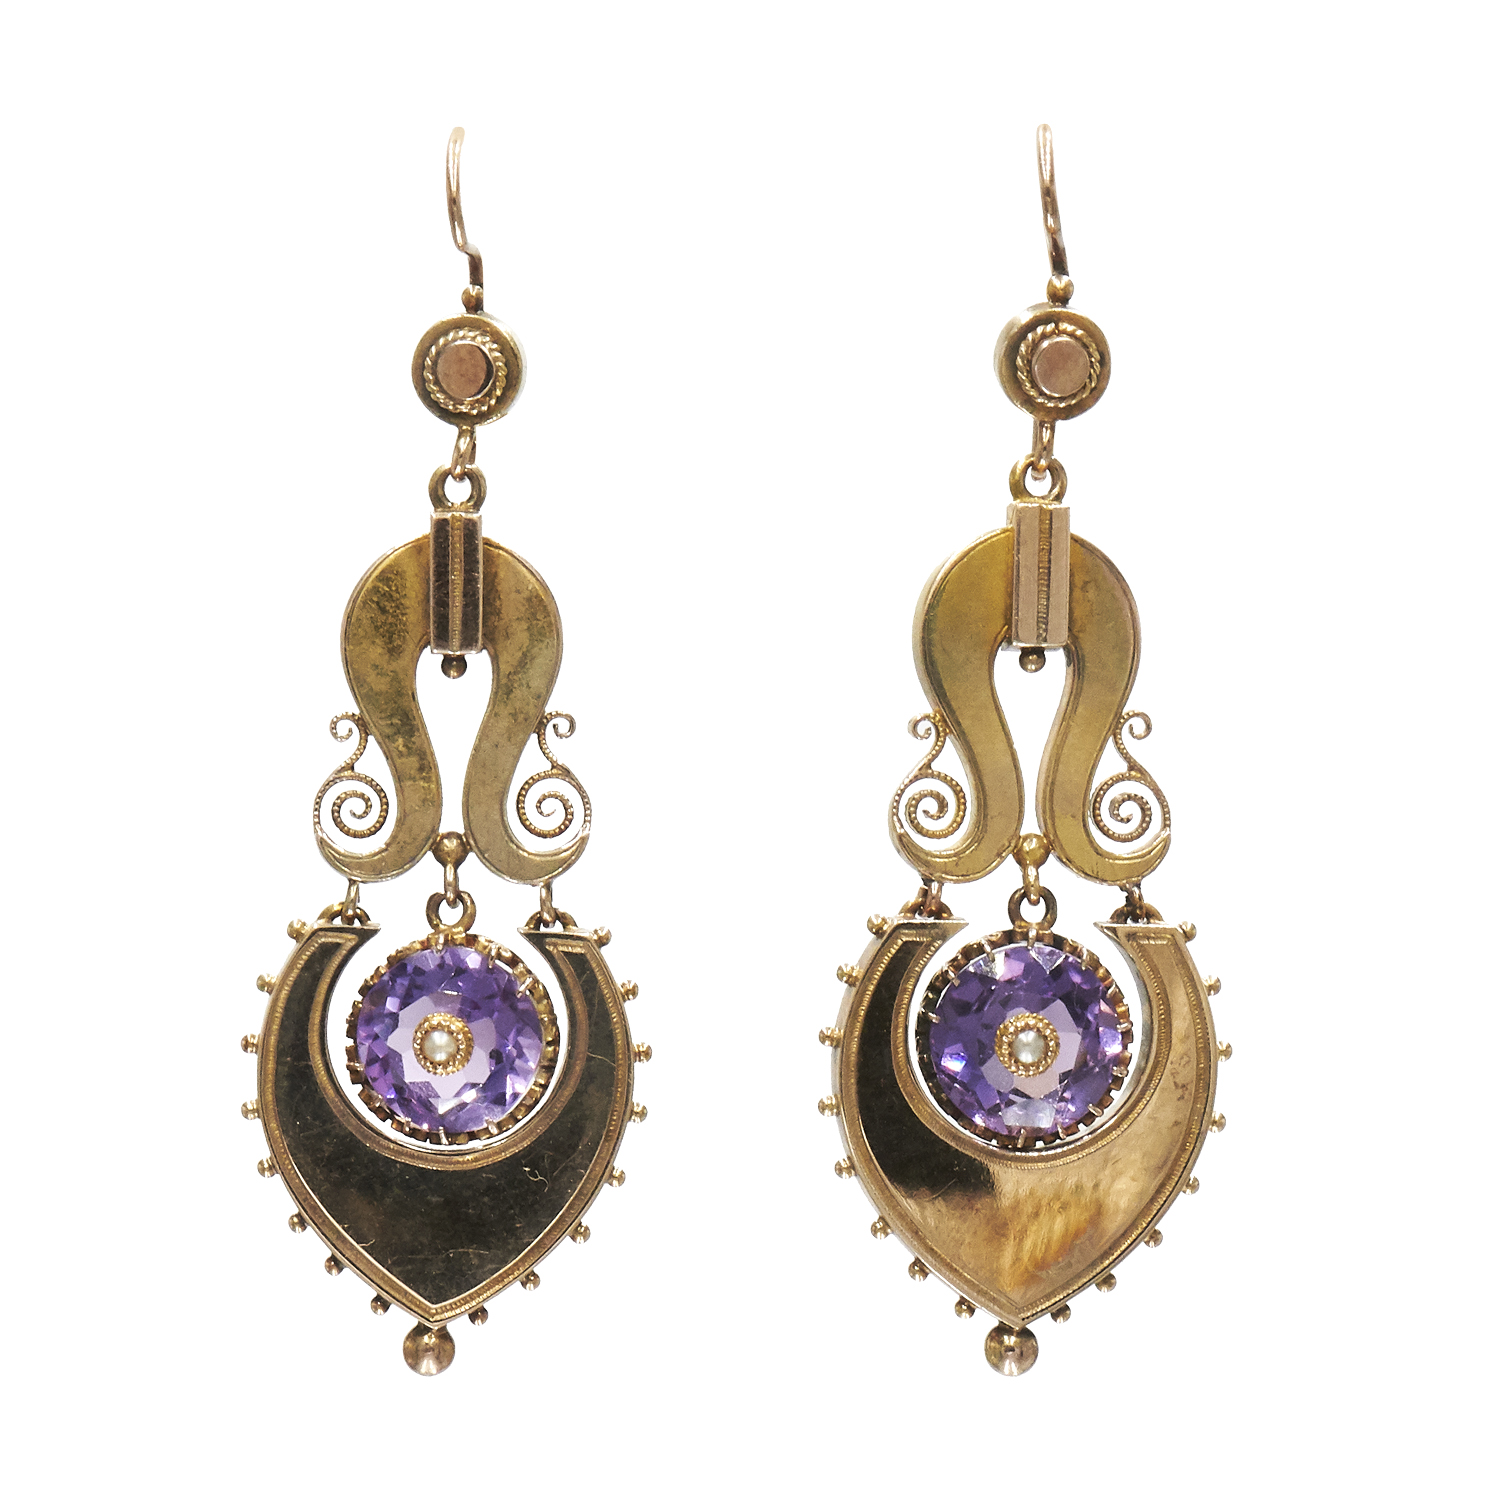 Antique 14K Yellow Gold and Amethyst Pendant Earrings Style E-40025-0-0-0